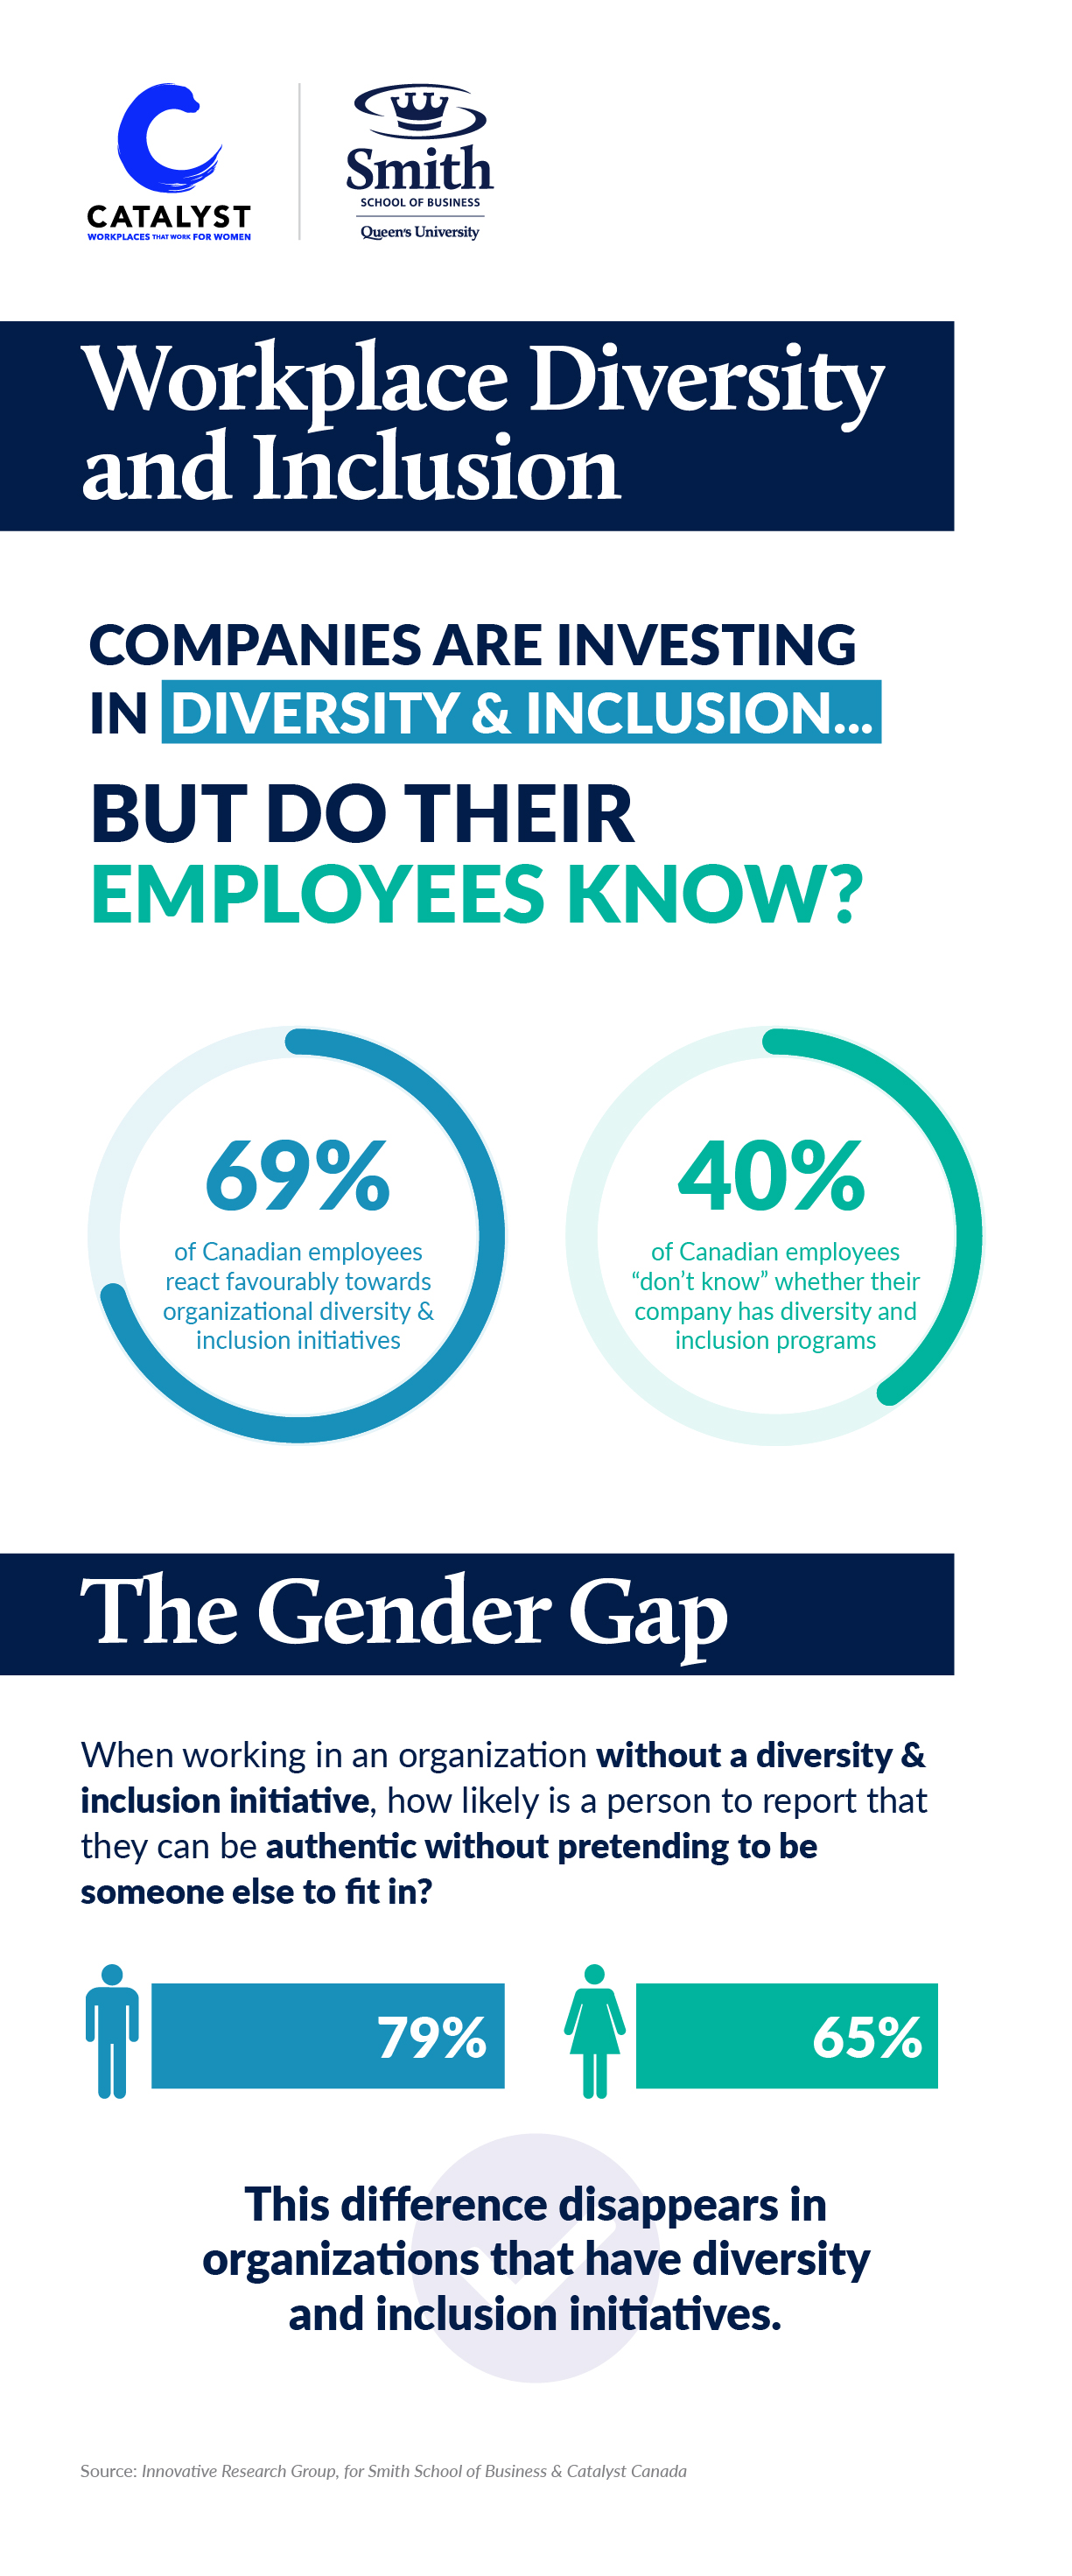 Smith_Catalyst_WorkplaceDiversity_infographic_v6